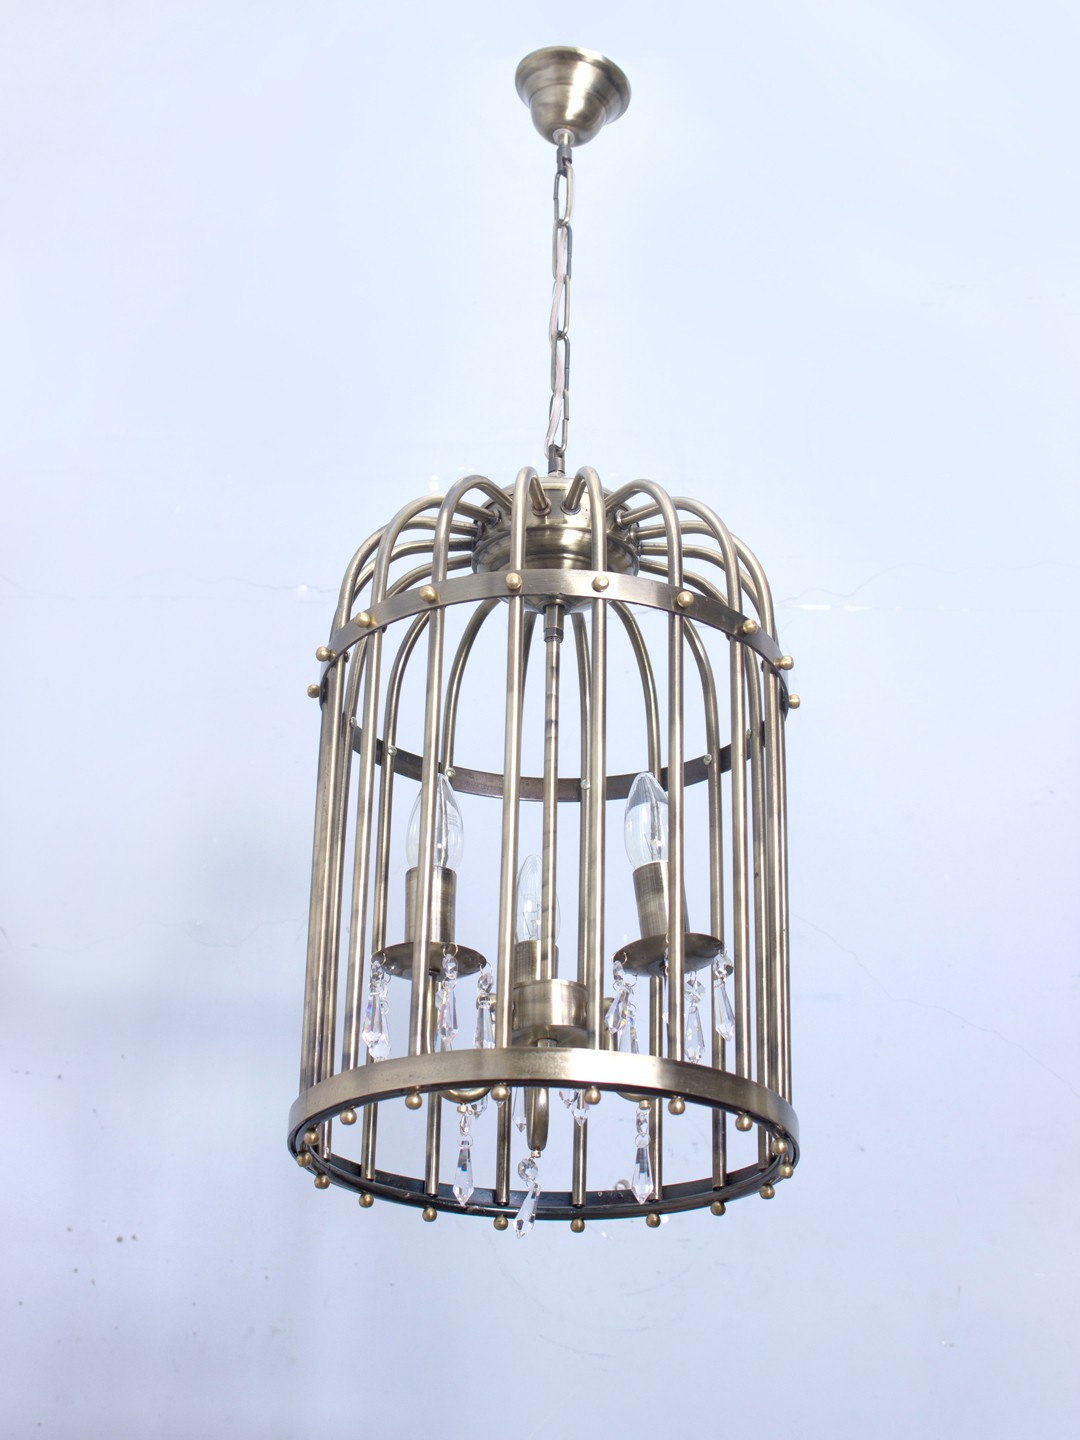 Antique Finished 3 light Birdcage Hanging Light with Crystals